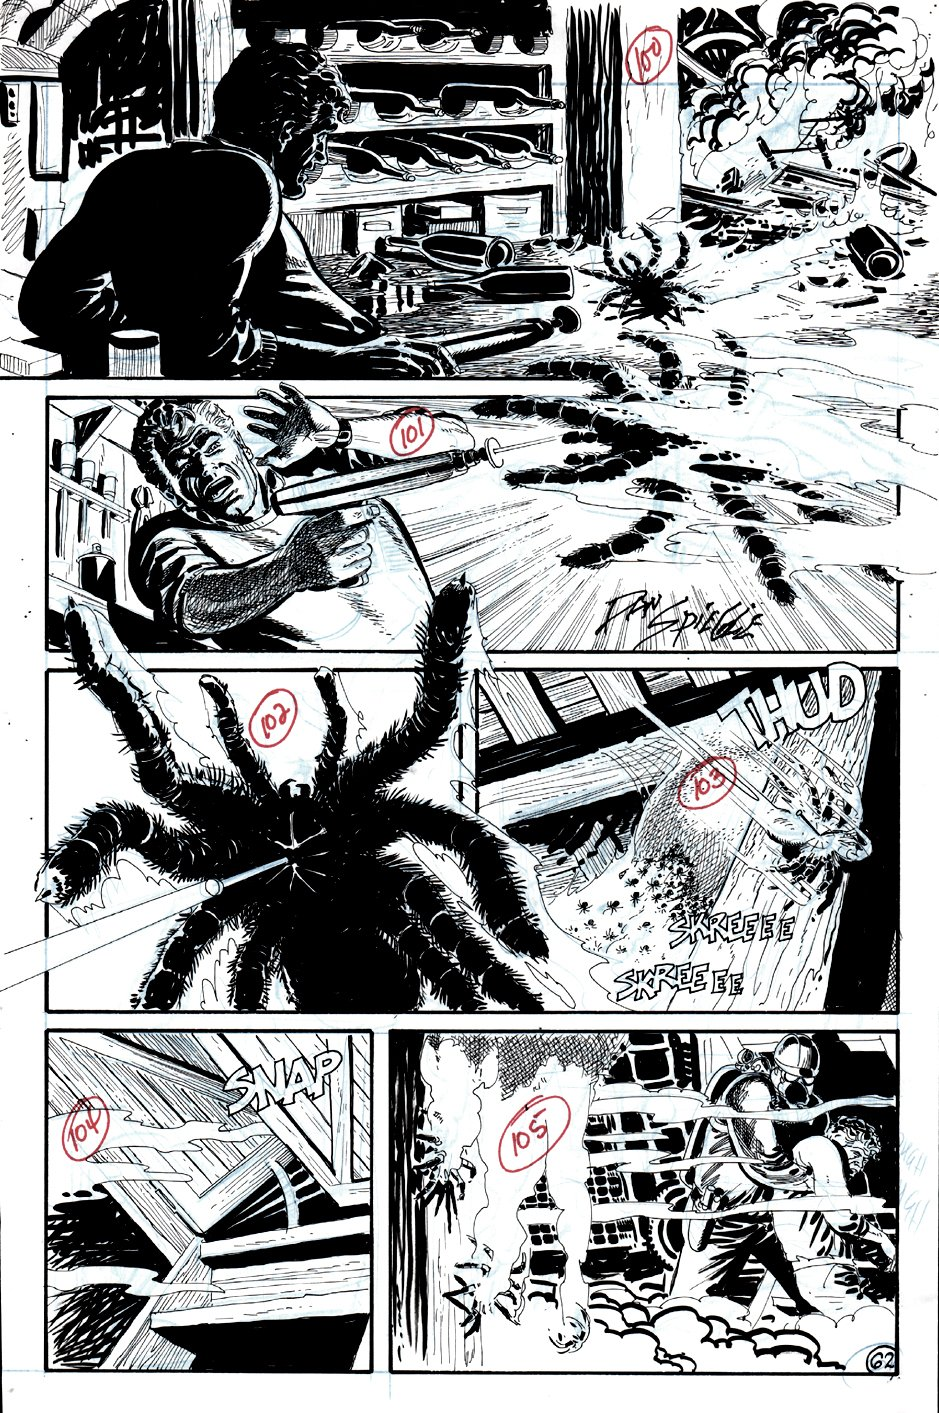 Arachnophobia #1 p 62 (CLIMAX OF STORY..BATTLING SPIDER HOARD!) 1990